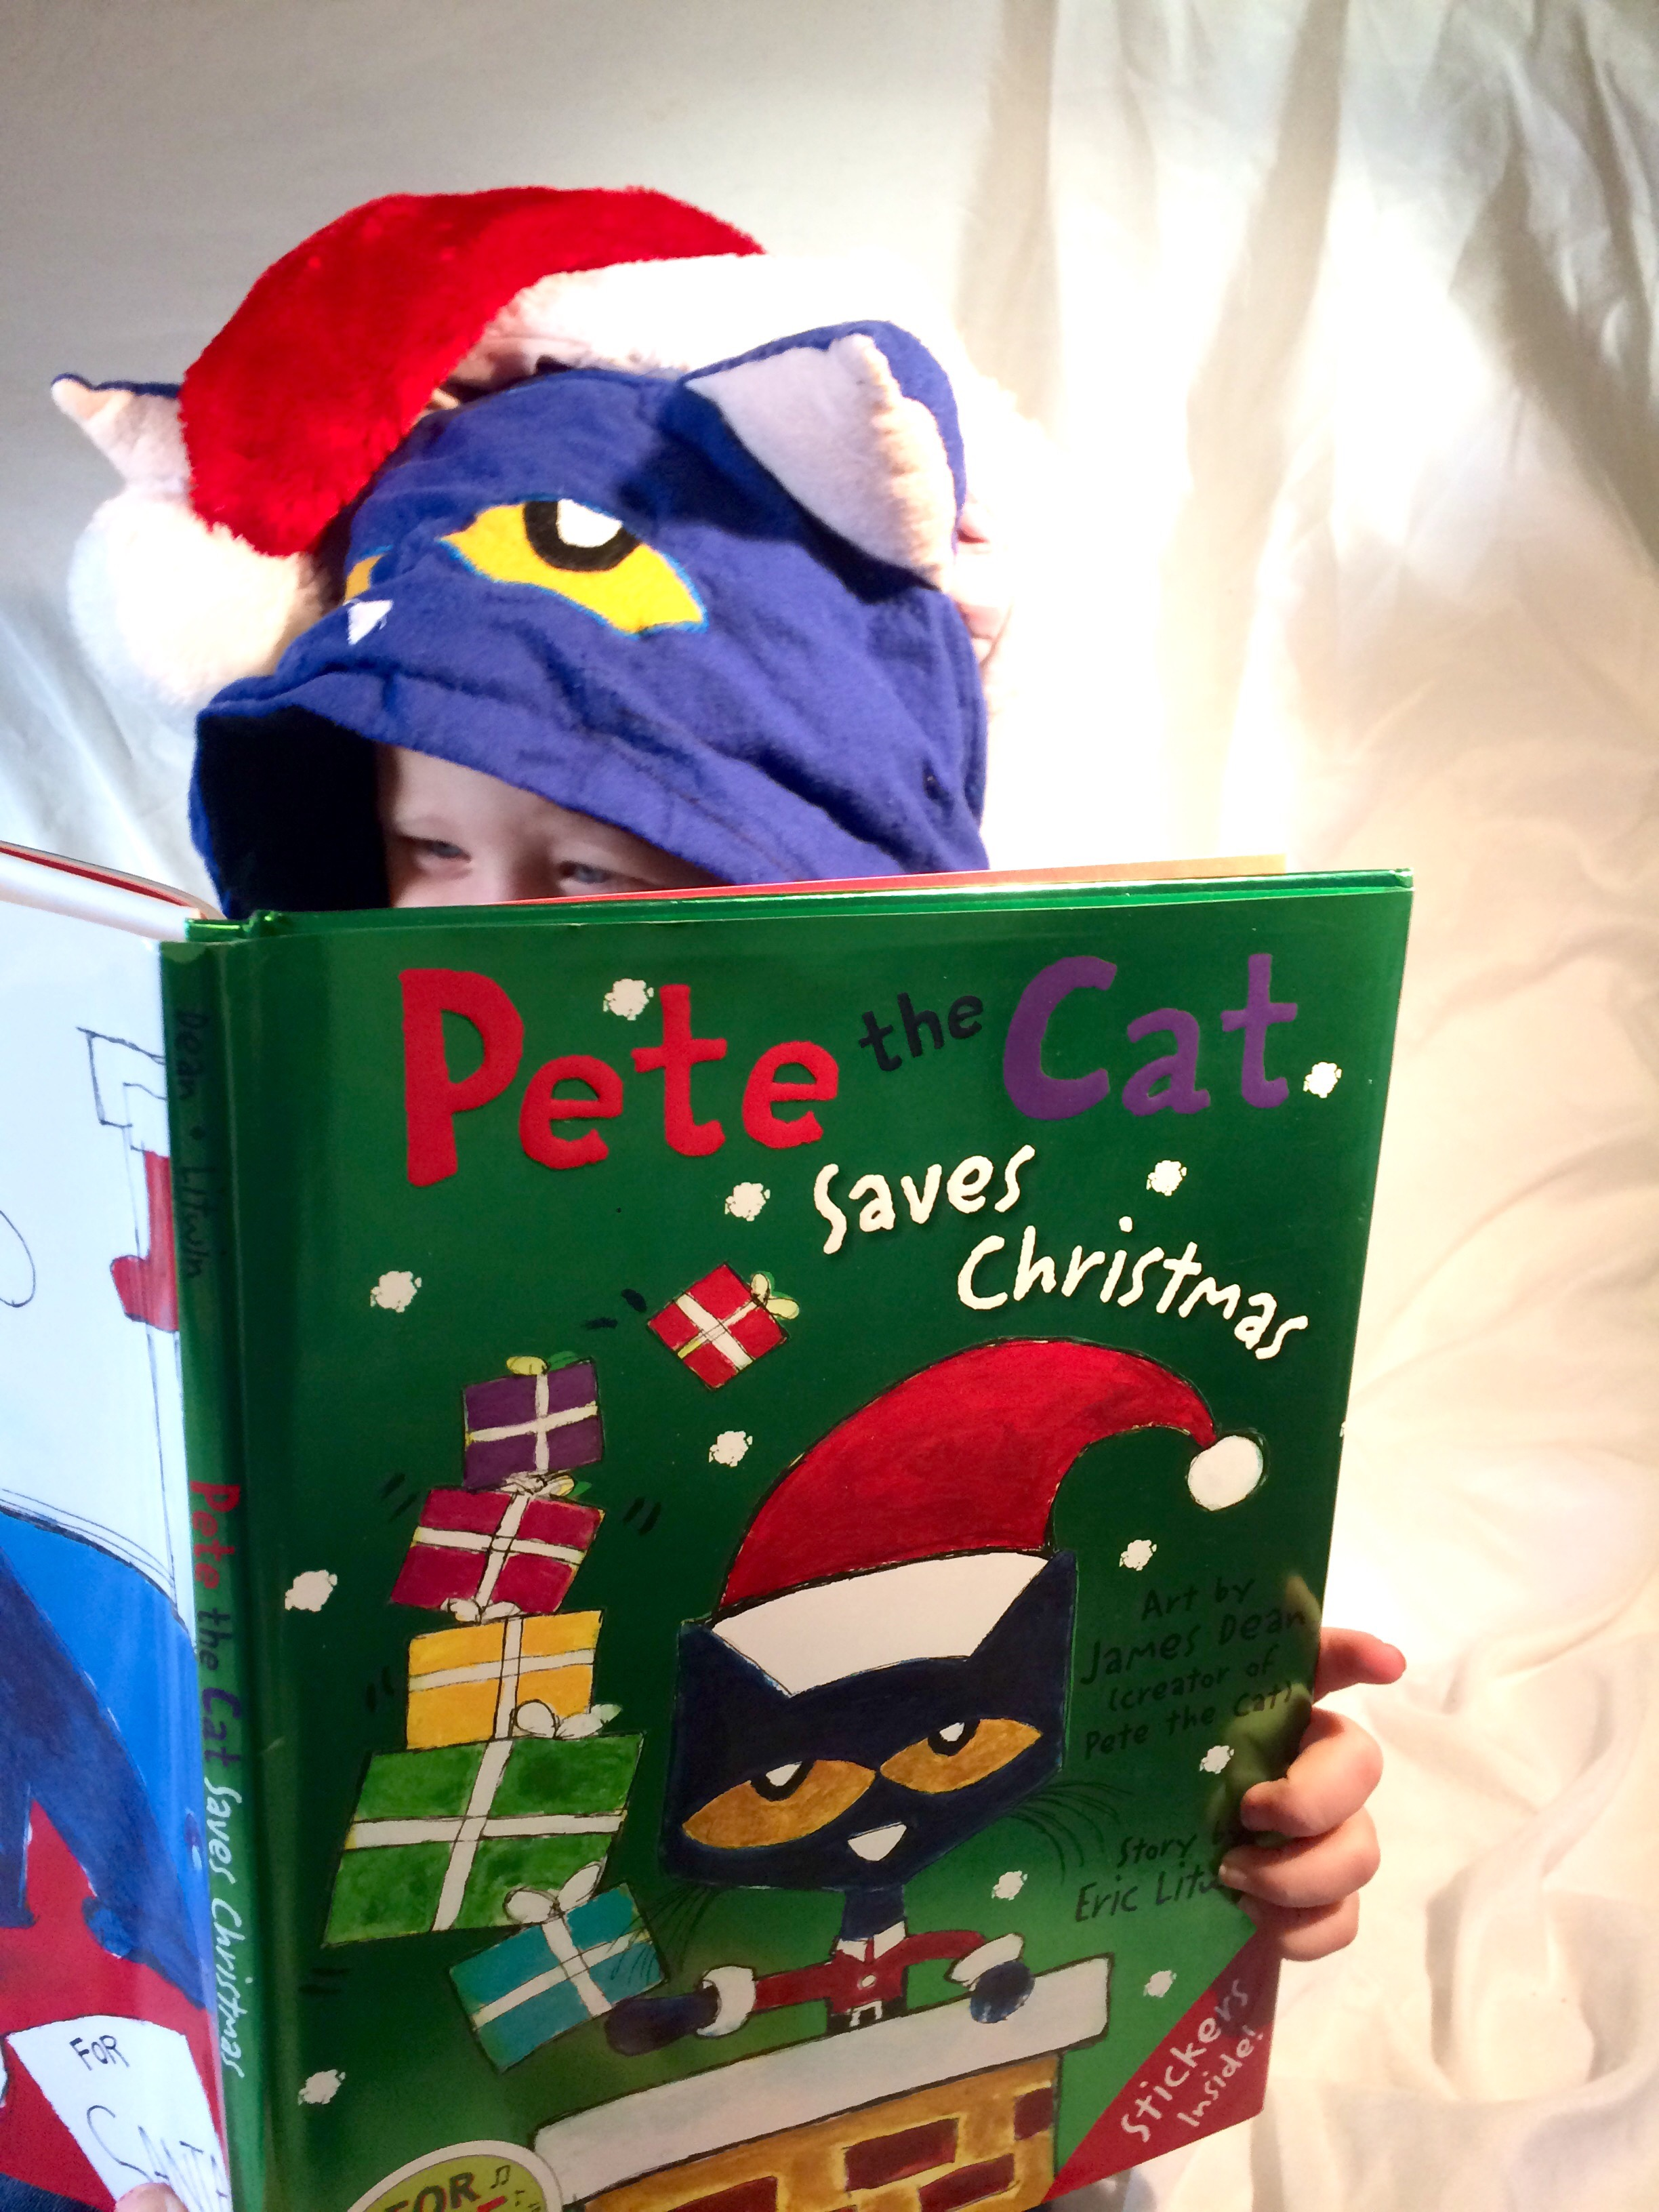 Pete The Cat Christmas.Pete The Cat Saves Christmas Homegrown Reader